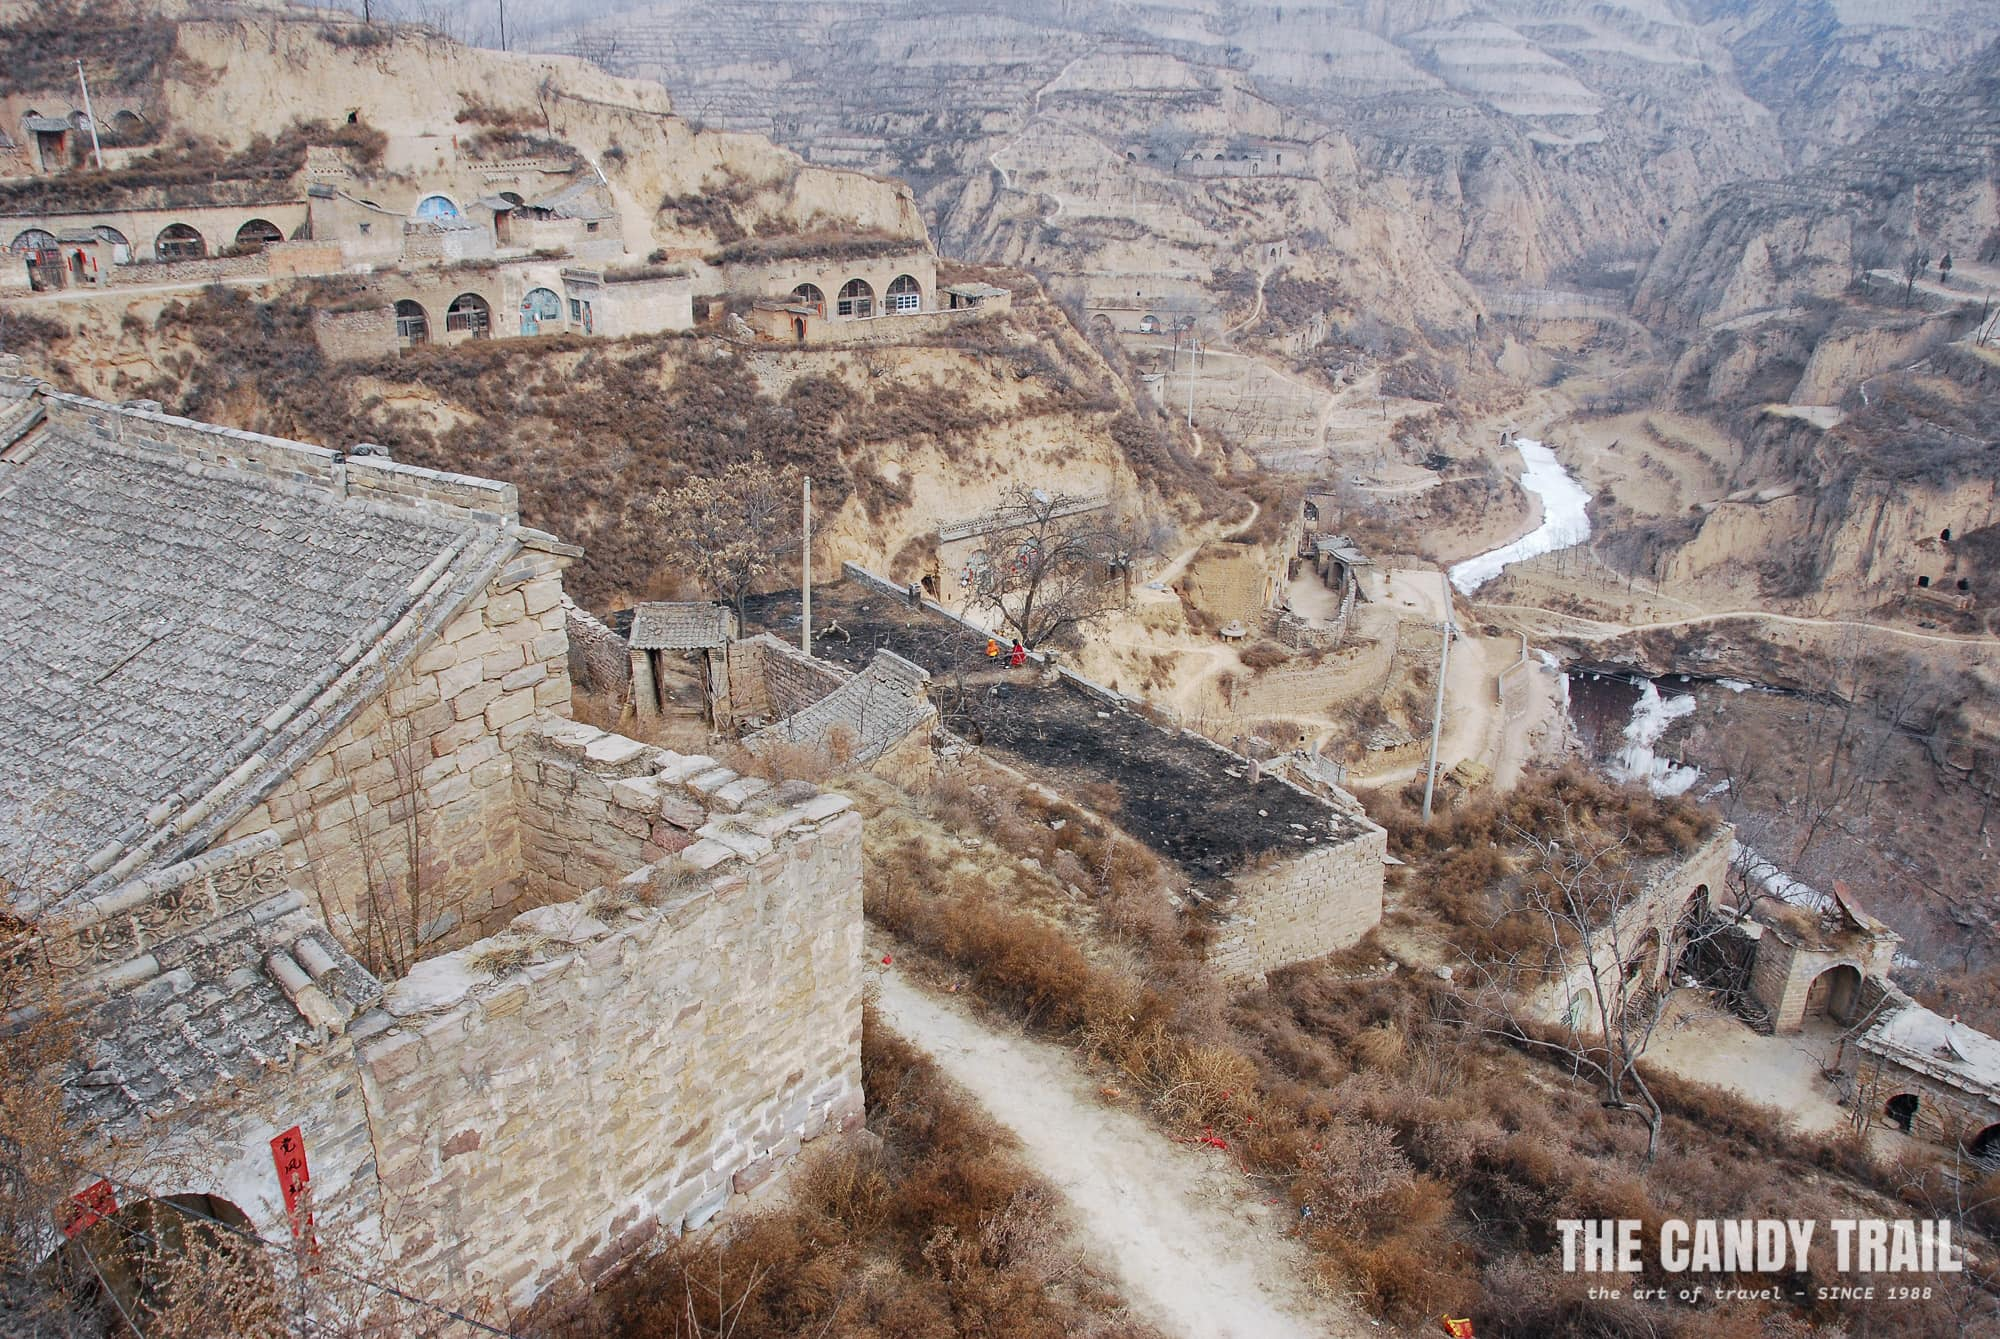 cave houses of lijiashan in china in winter